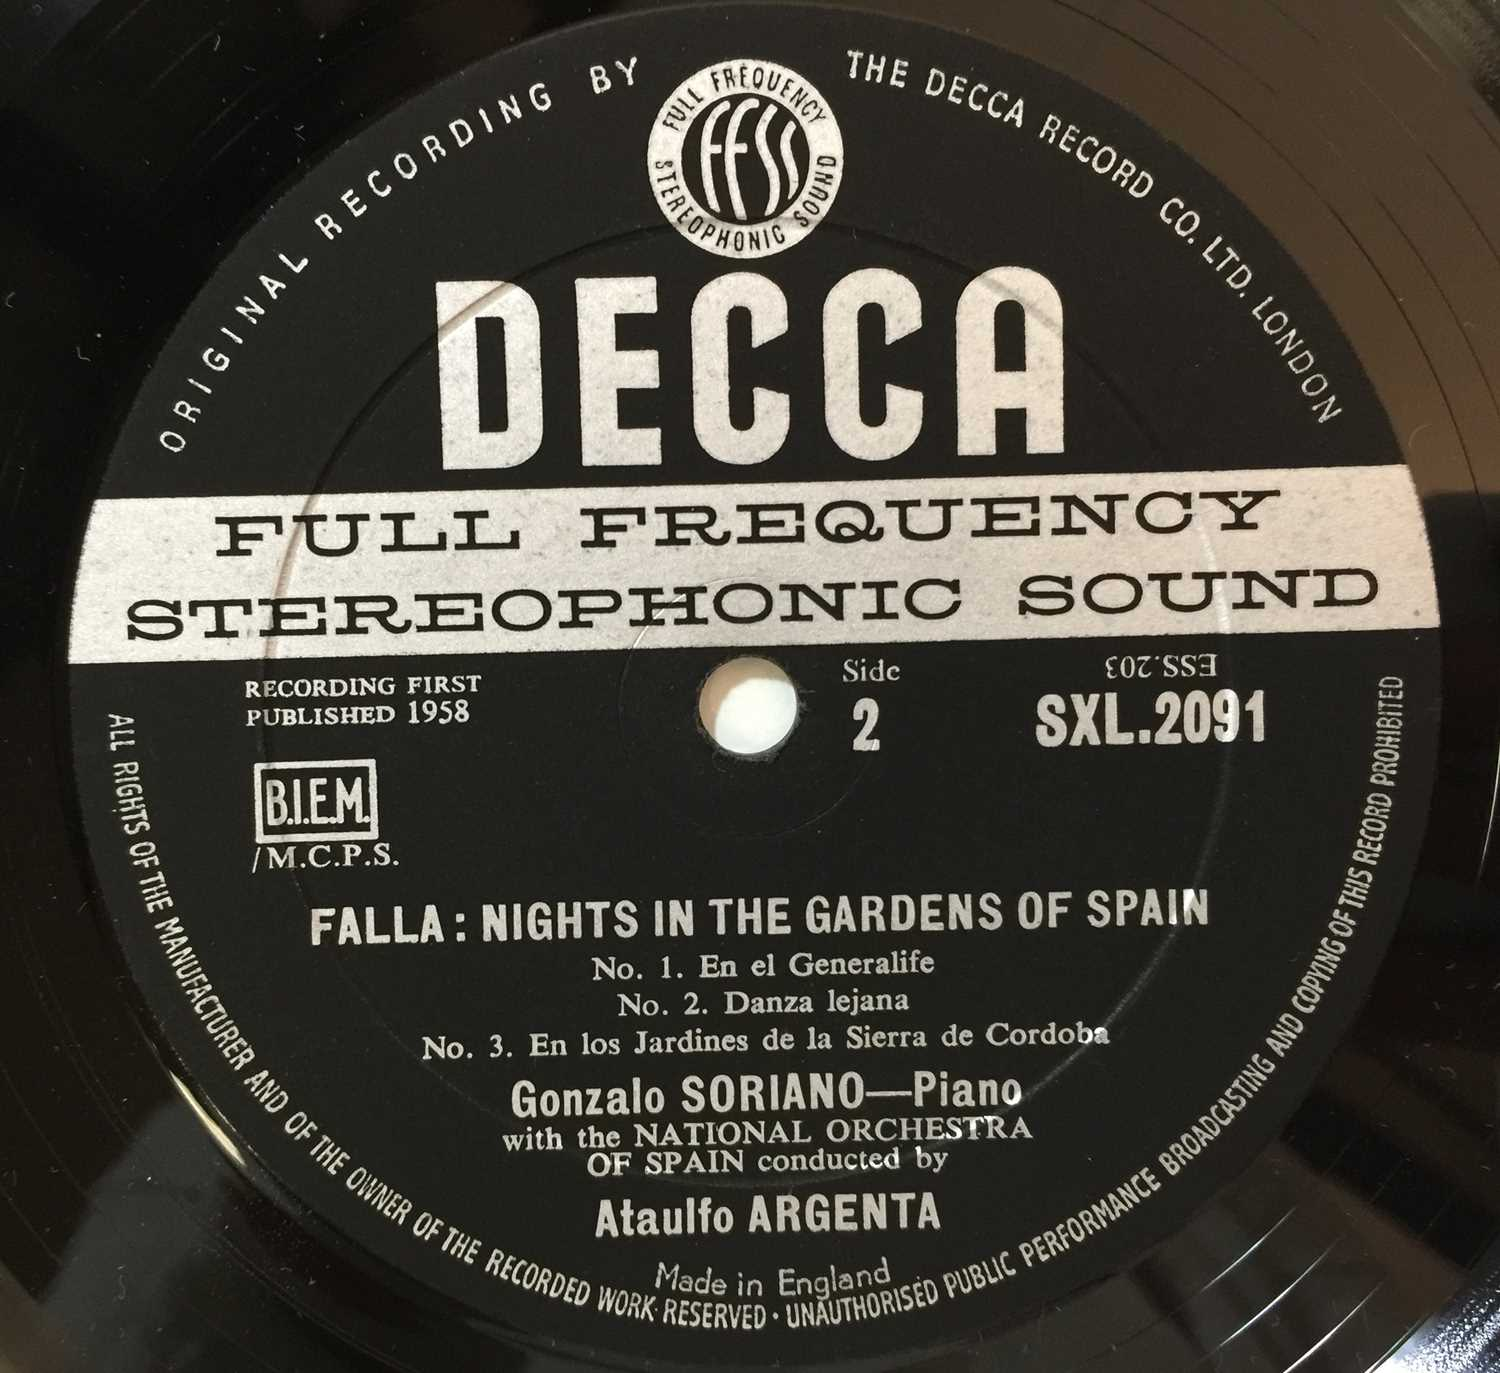 ARGENTA - FALLA: NIGHTS IN THE GARDENS OF SPAIN UK STEREO LP (SXL 2091 - ED1) - Image 4 of 4